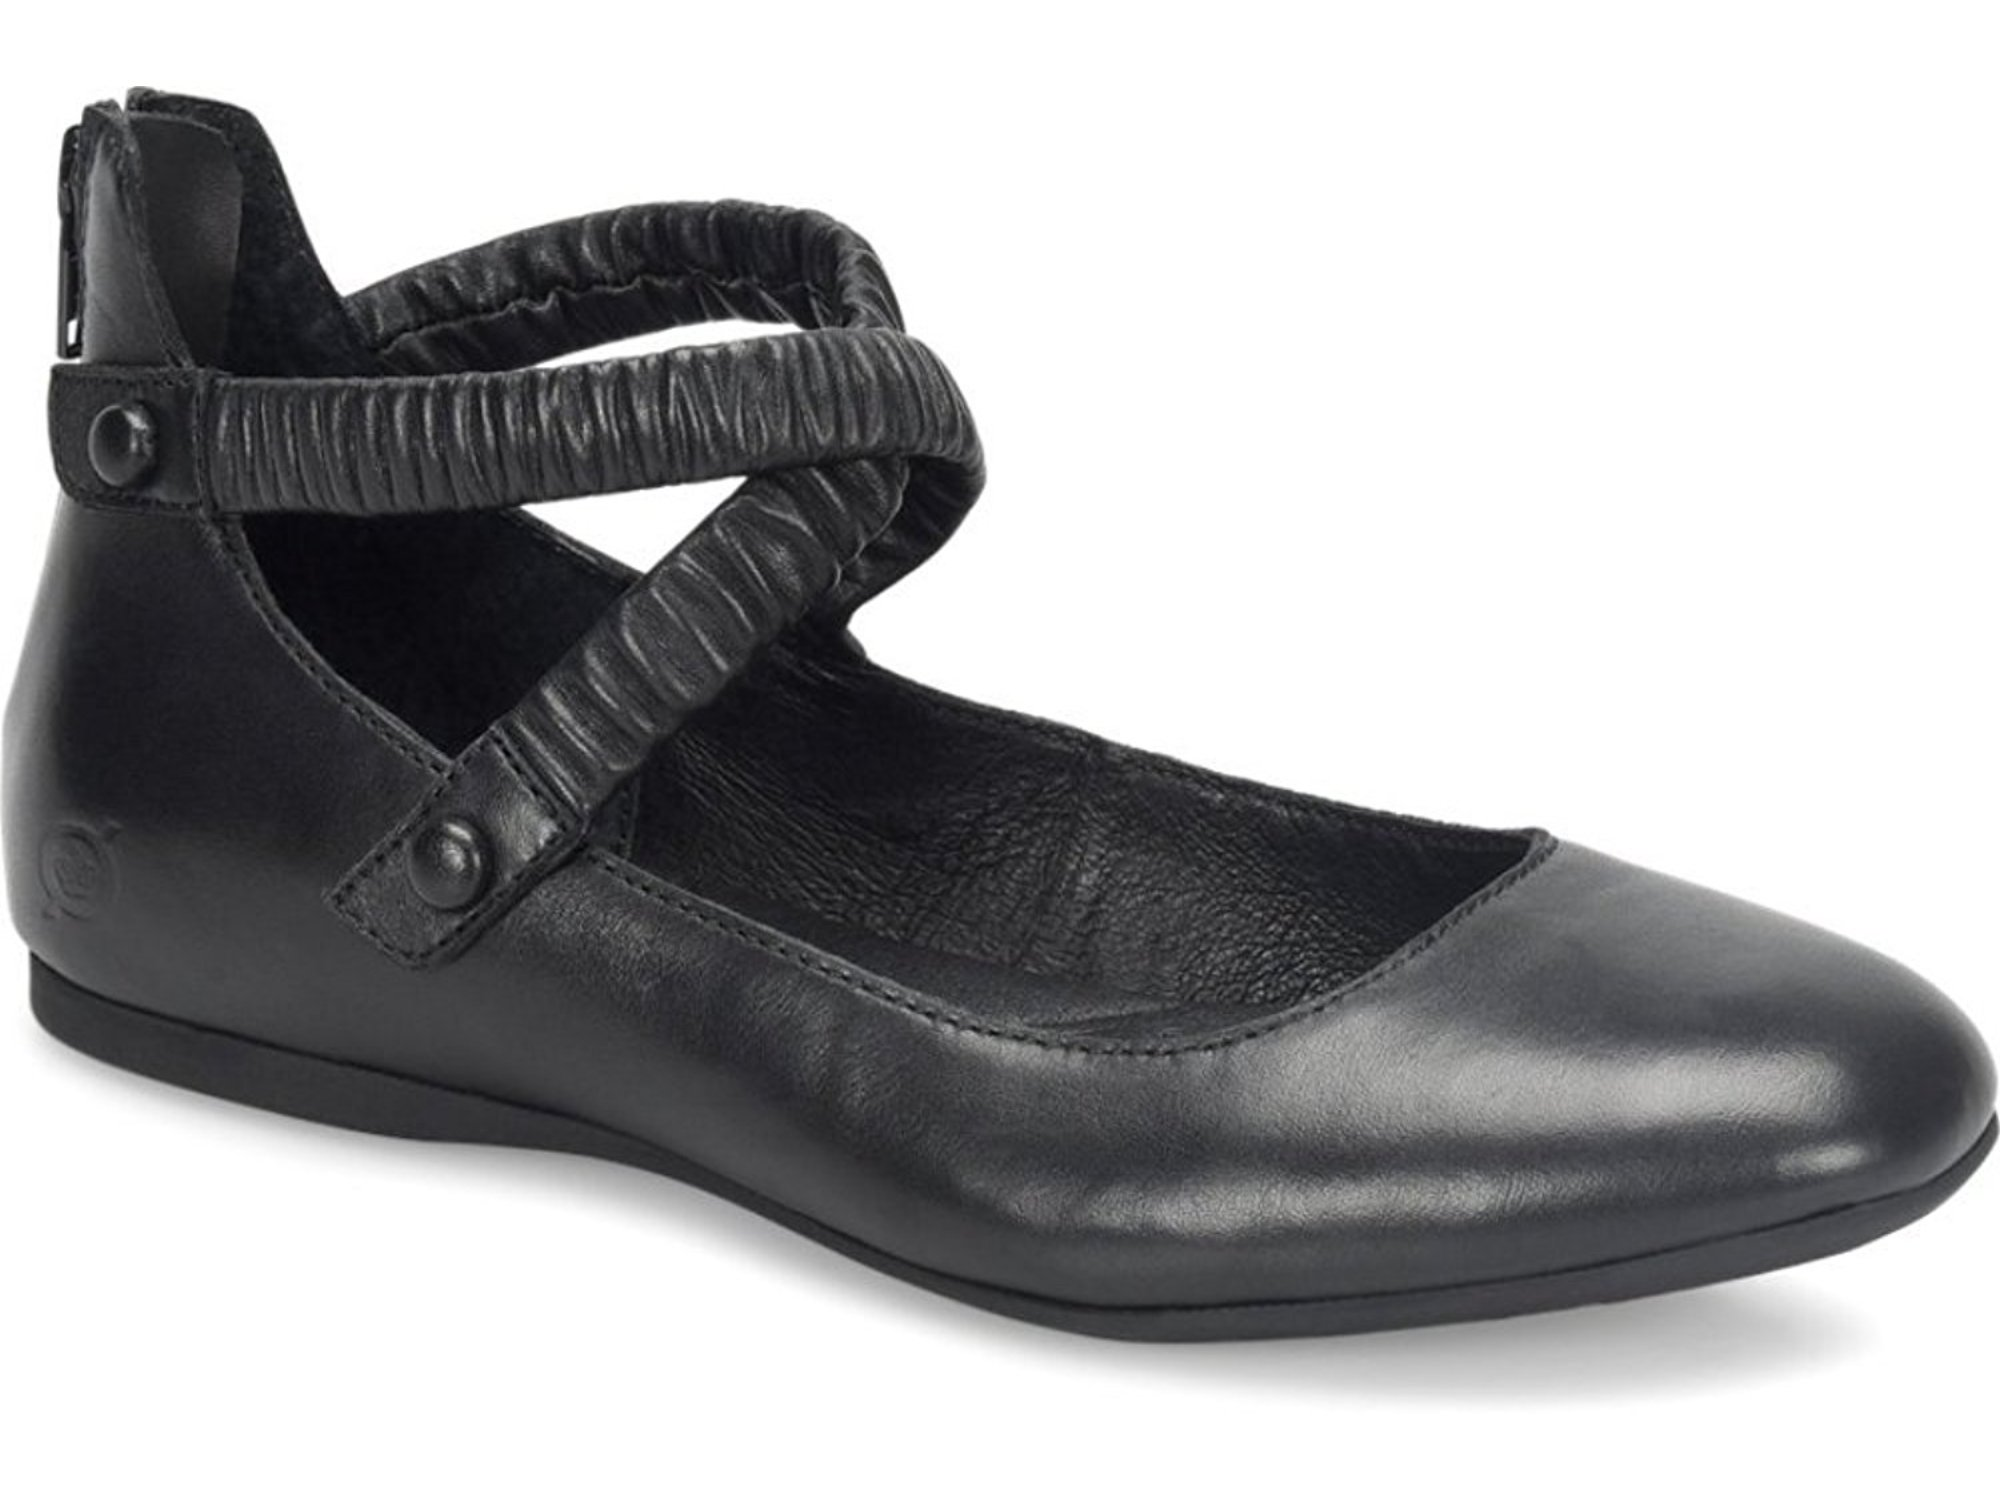 Born - Womens - Leif Economical, stylish, and eye-catching shoes